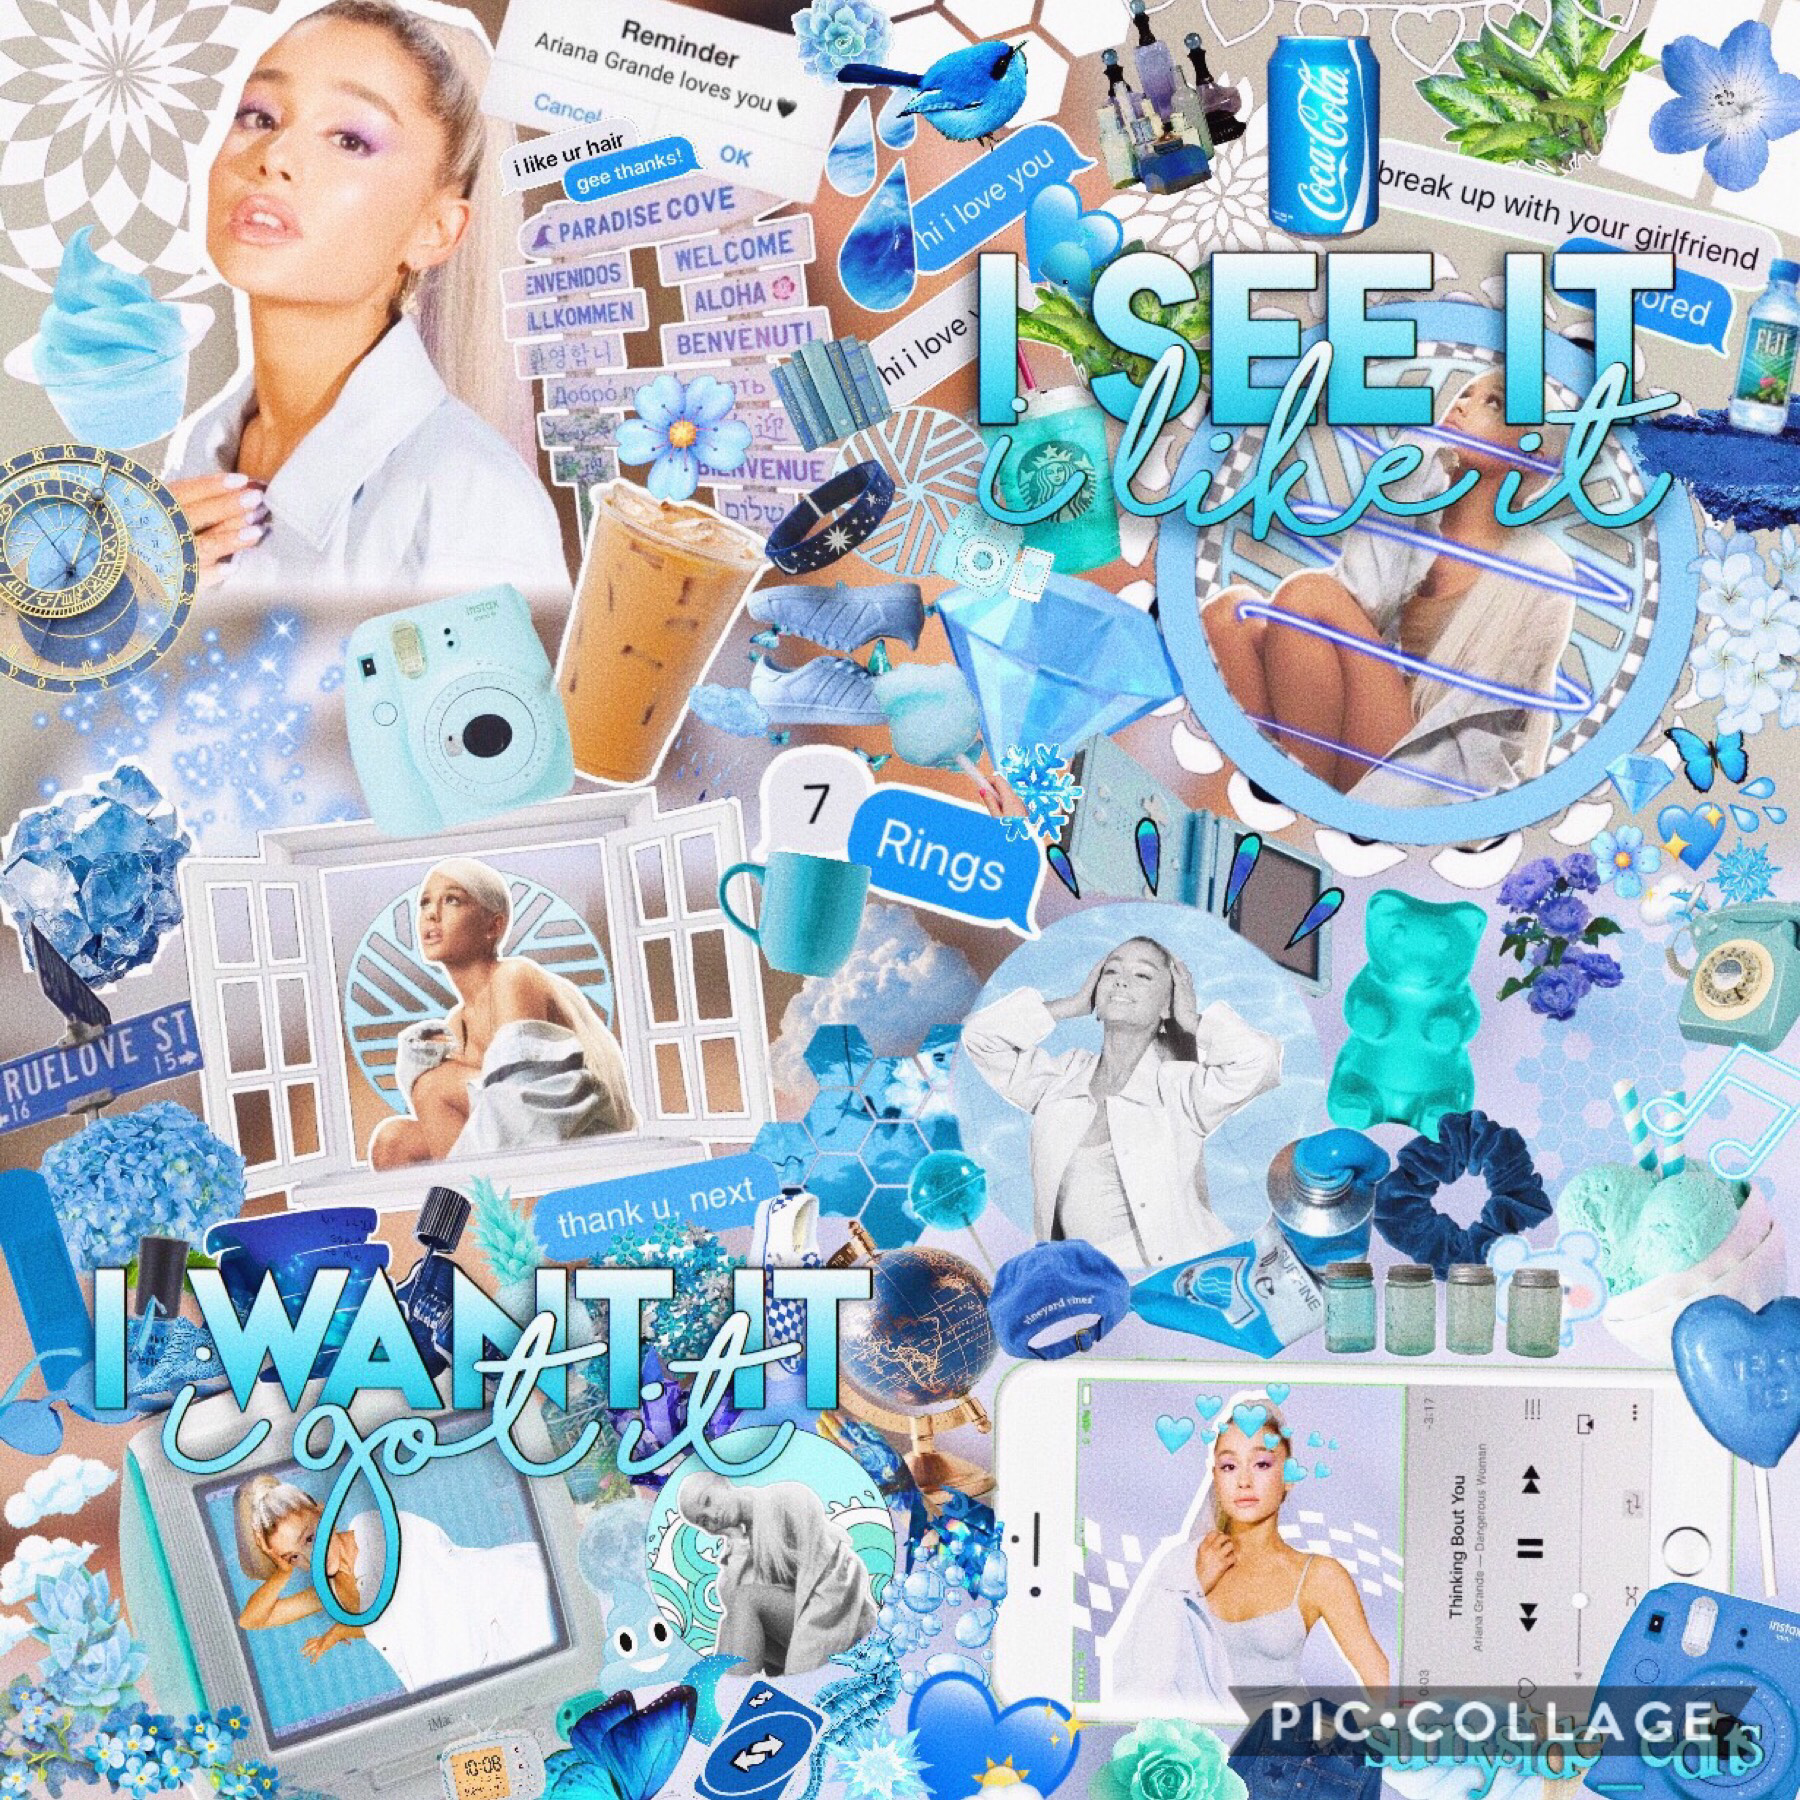 I MADE THIS. TO ALL THE PEOPLE WHO MAKE COLLAGES LIKE THIS ALL THE TIME, BLESS YOU. THIS TOOK WAY TOO LONG. IM NOT EVEN KIDDING RN. (i used PicsArt haha) BUT THIS TAKES A LONG TIME